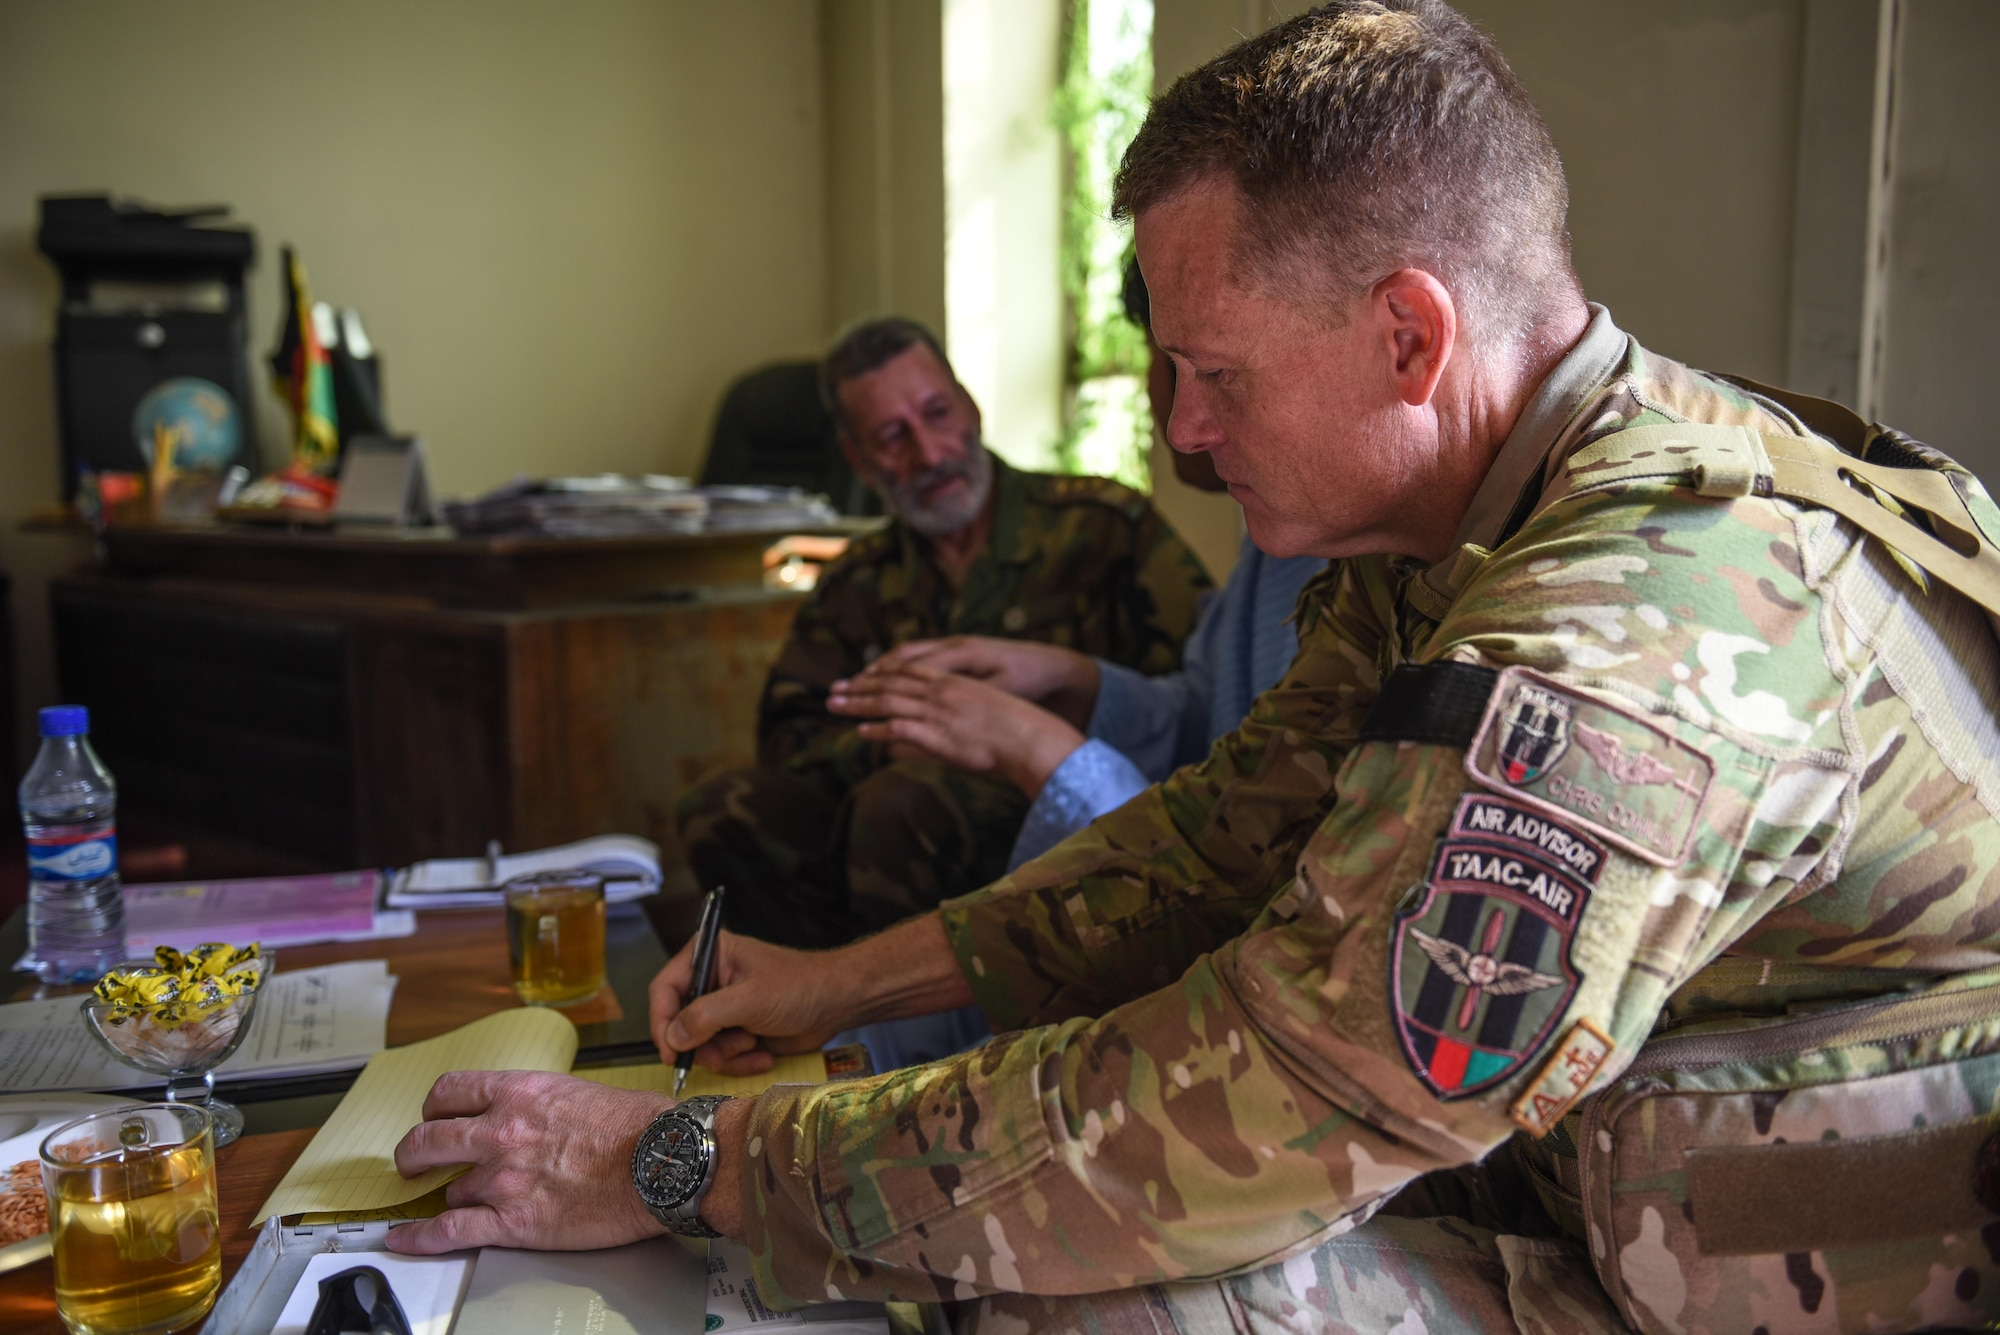 Chaplain (Maj.) Chris Conklin, Train, Advise, Assist Command-Air air advisor (right), takes notes during a meeting with Afghan National Army Col. Abdul Basir, head of the Afghan Air Force Religious and Cultural Affairs office, Sept. 14, 2017, in Kabul, Afghanistan. Conklin provides coordination and advice on the organization of religious support in the developing Afghan Air Force. (U.S. Air Force photo by Staff Sgt. Alexander W. Riedel)